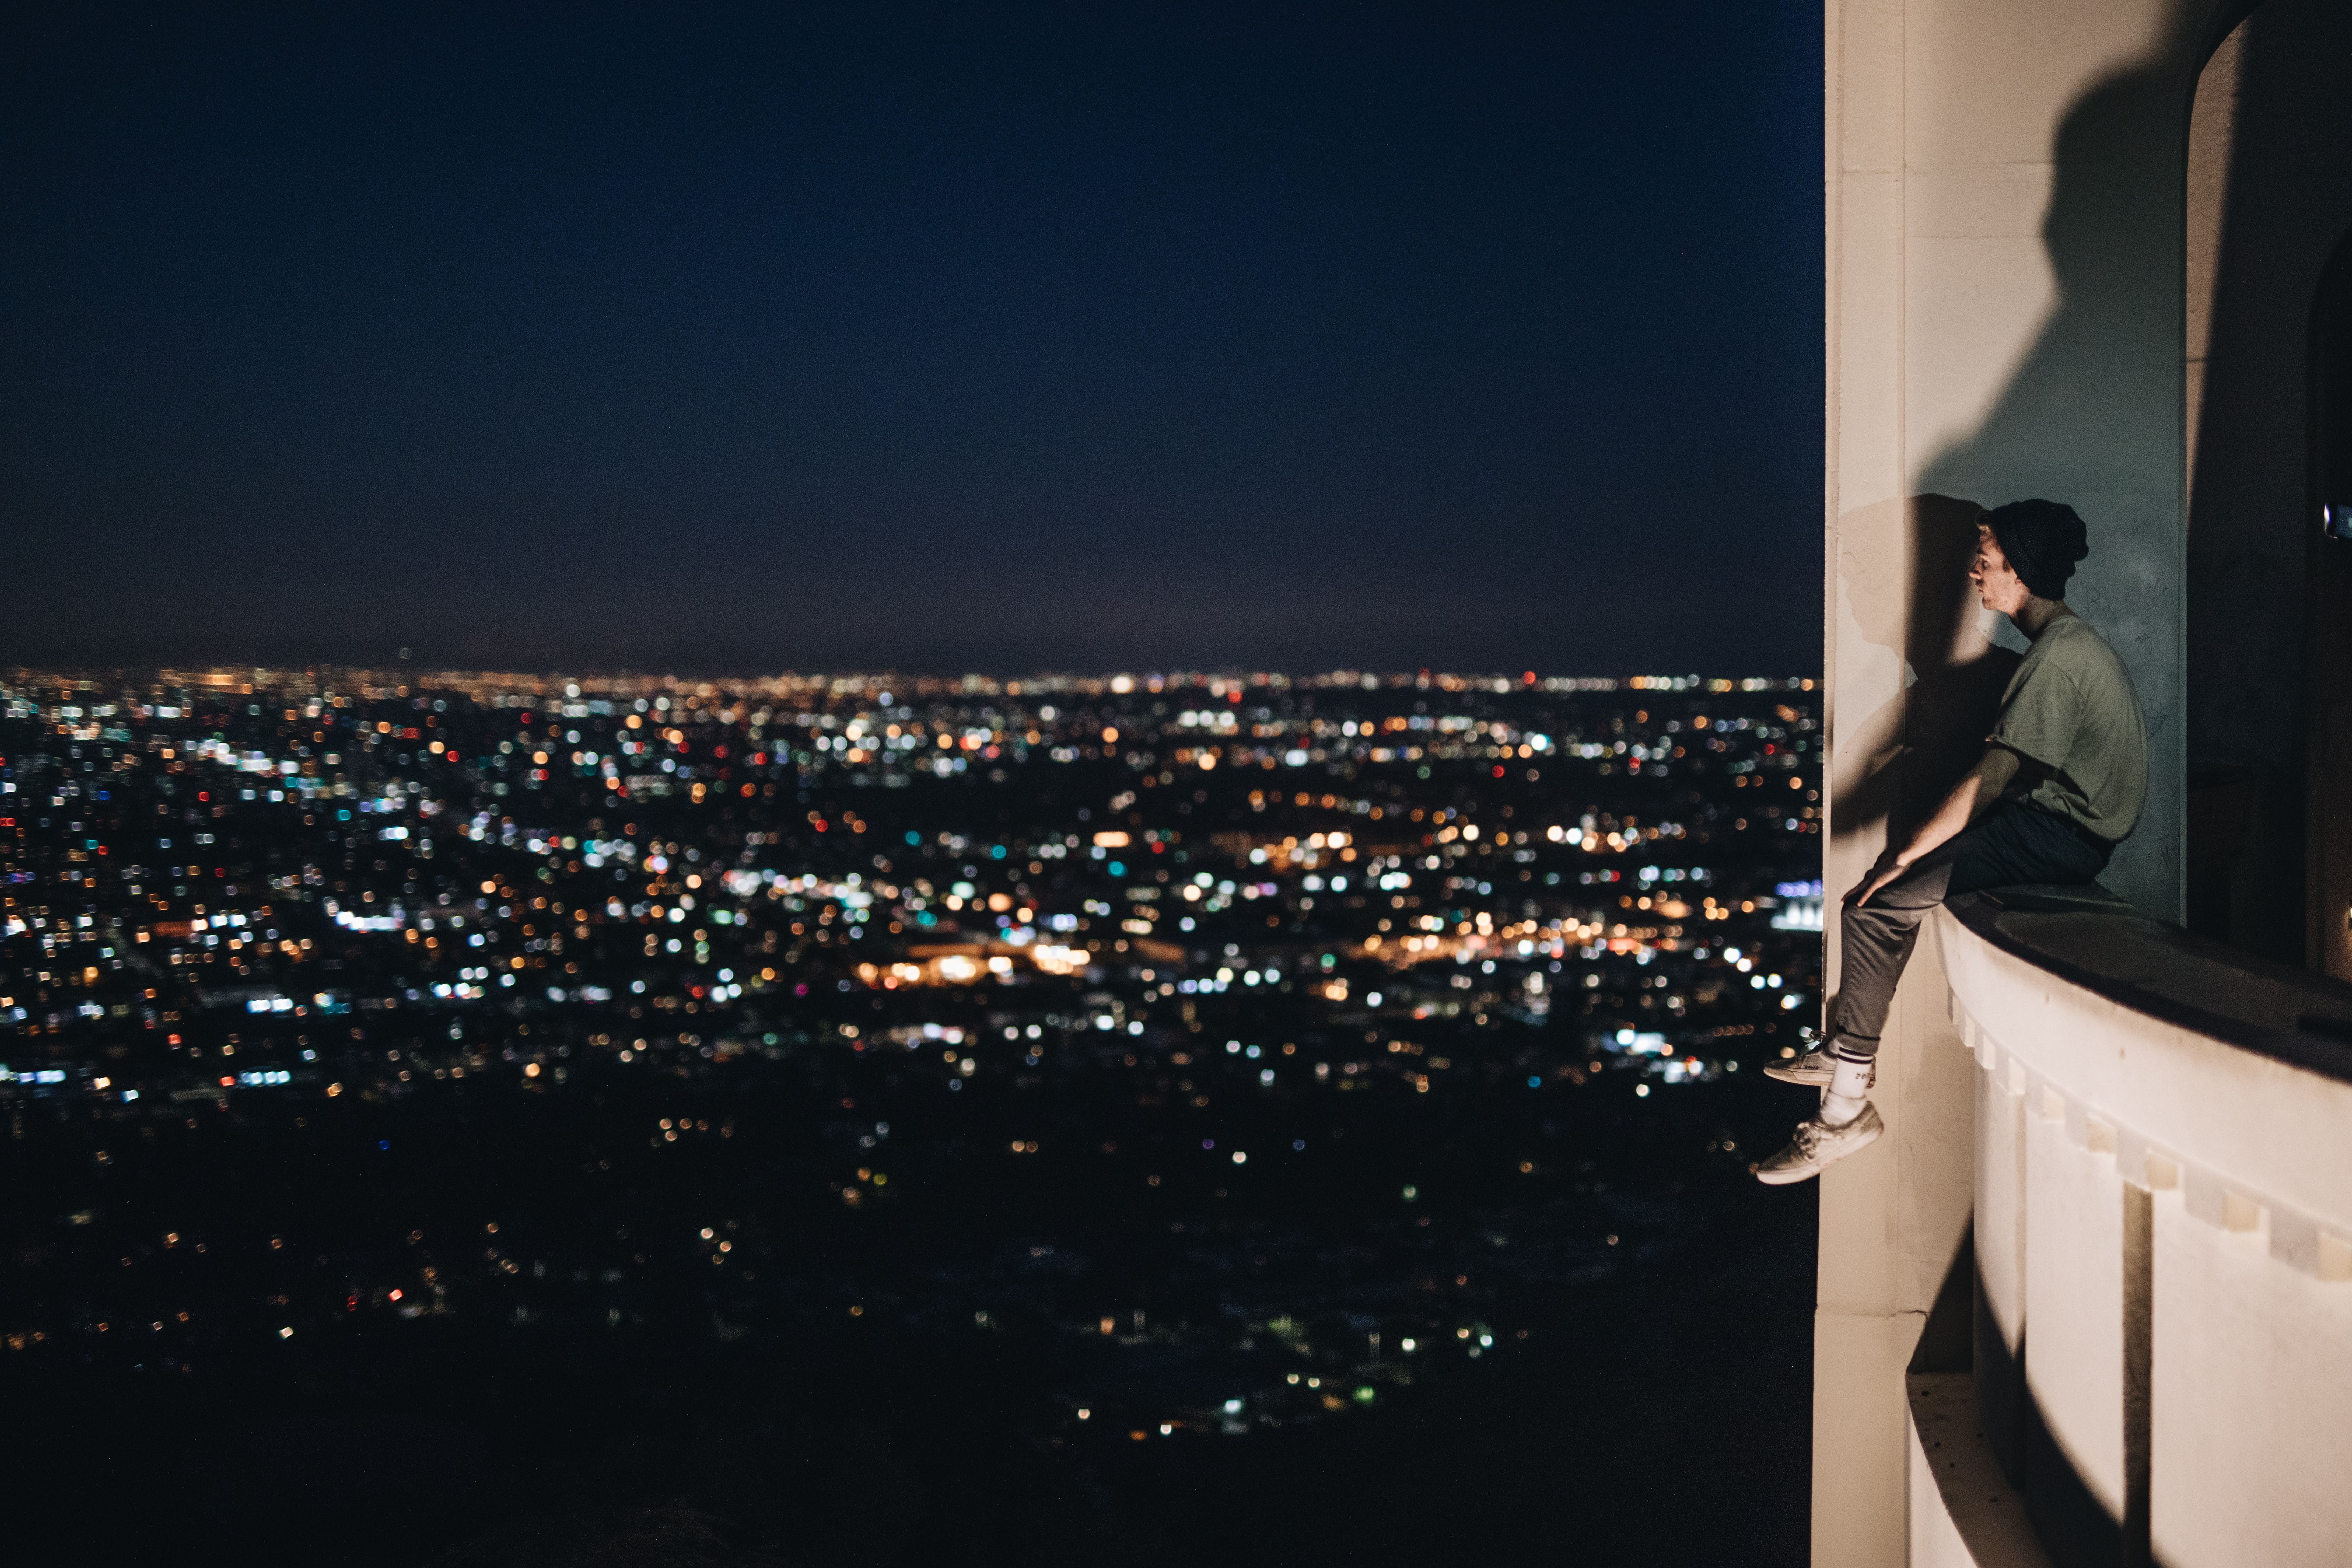 man sitting on building balcony during nighttime